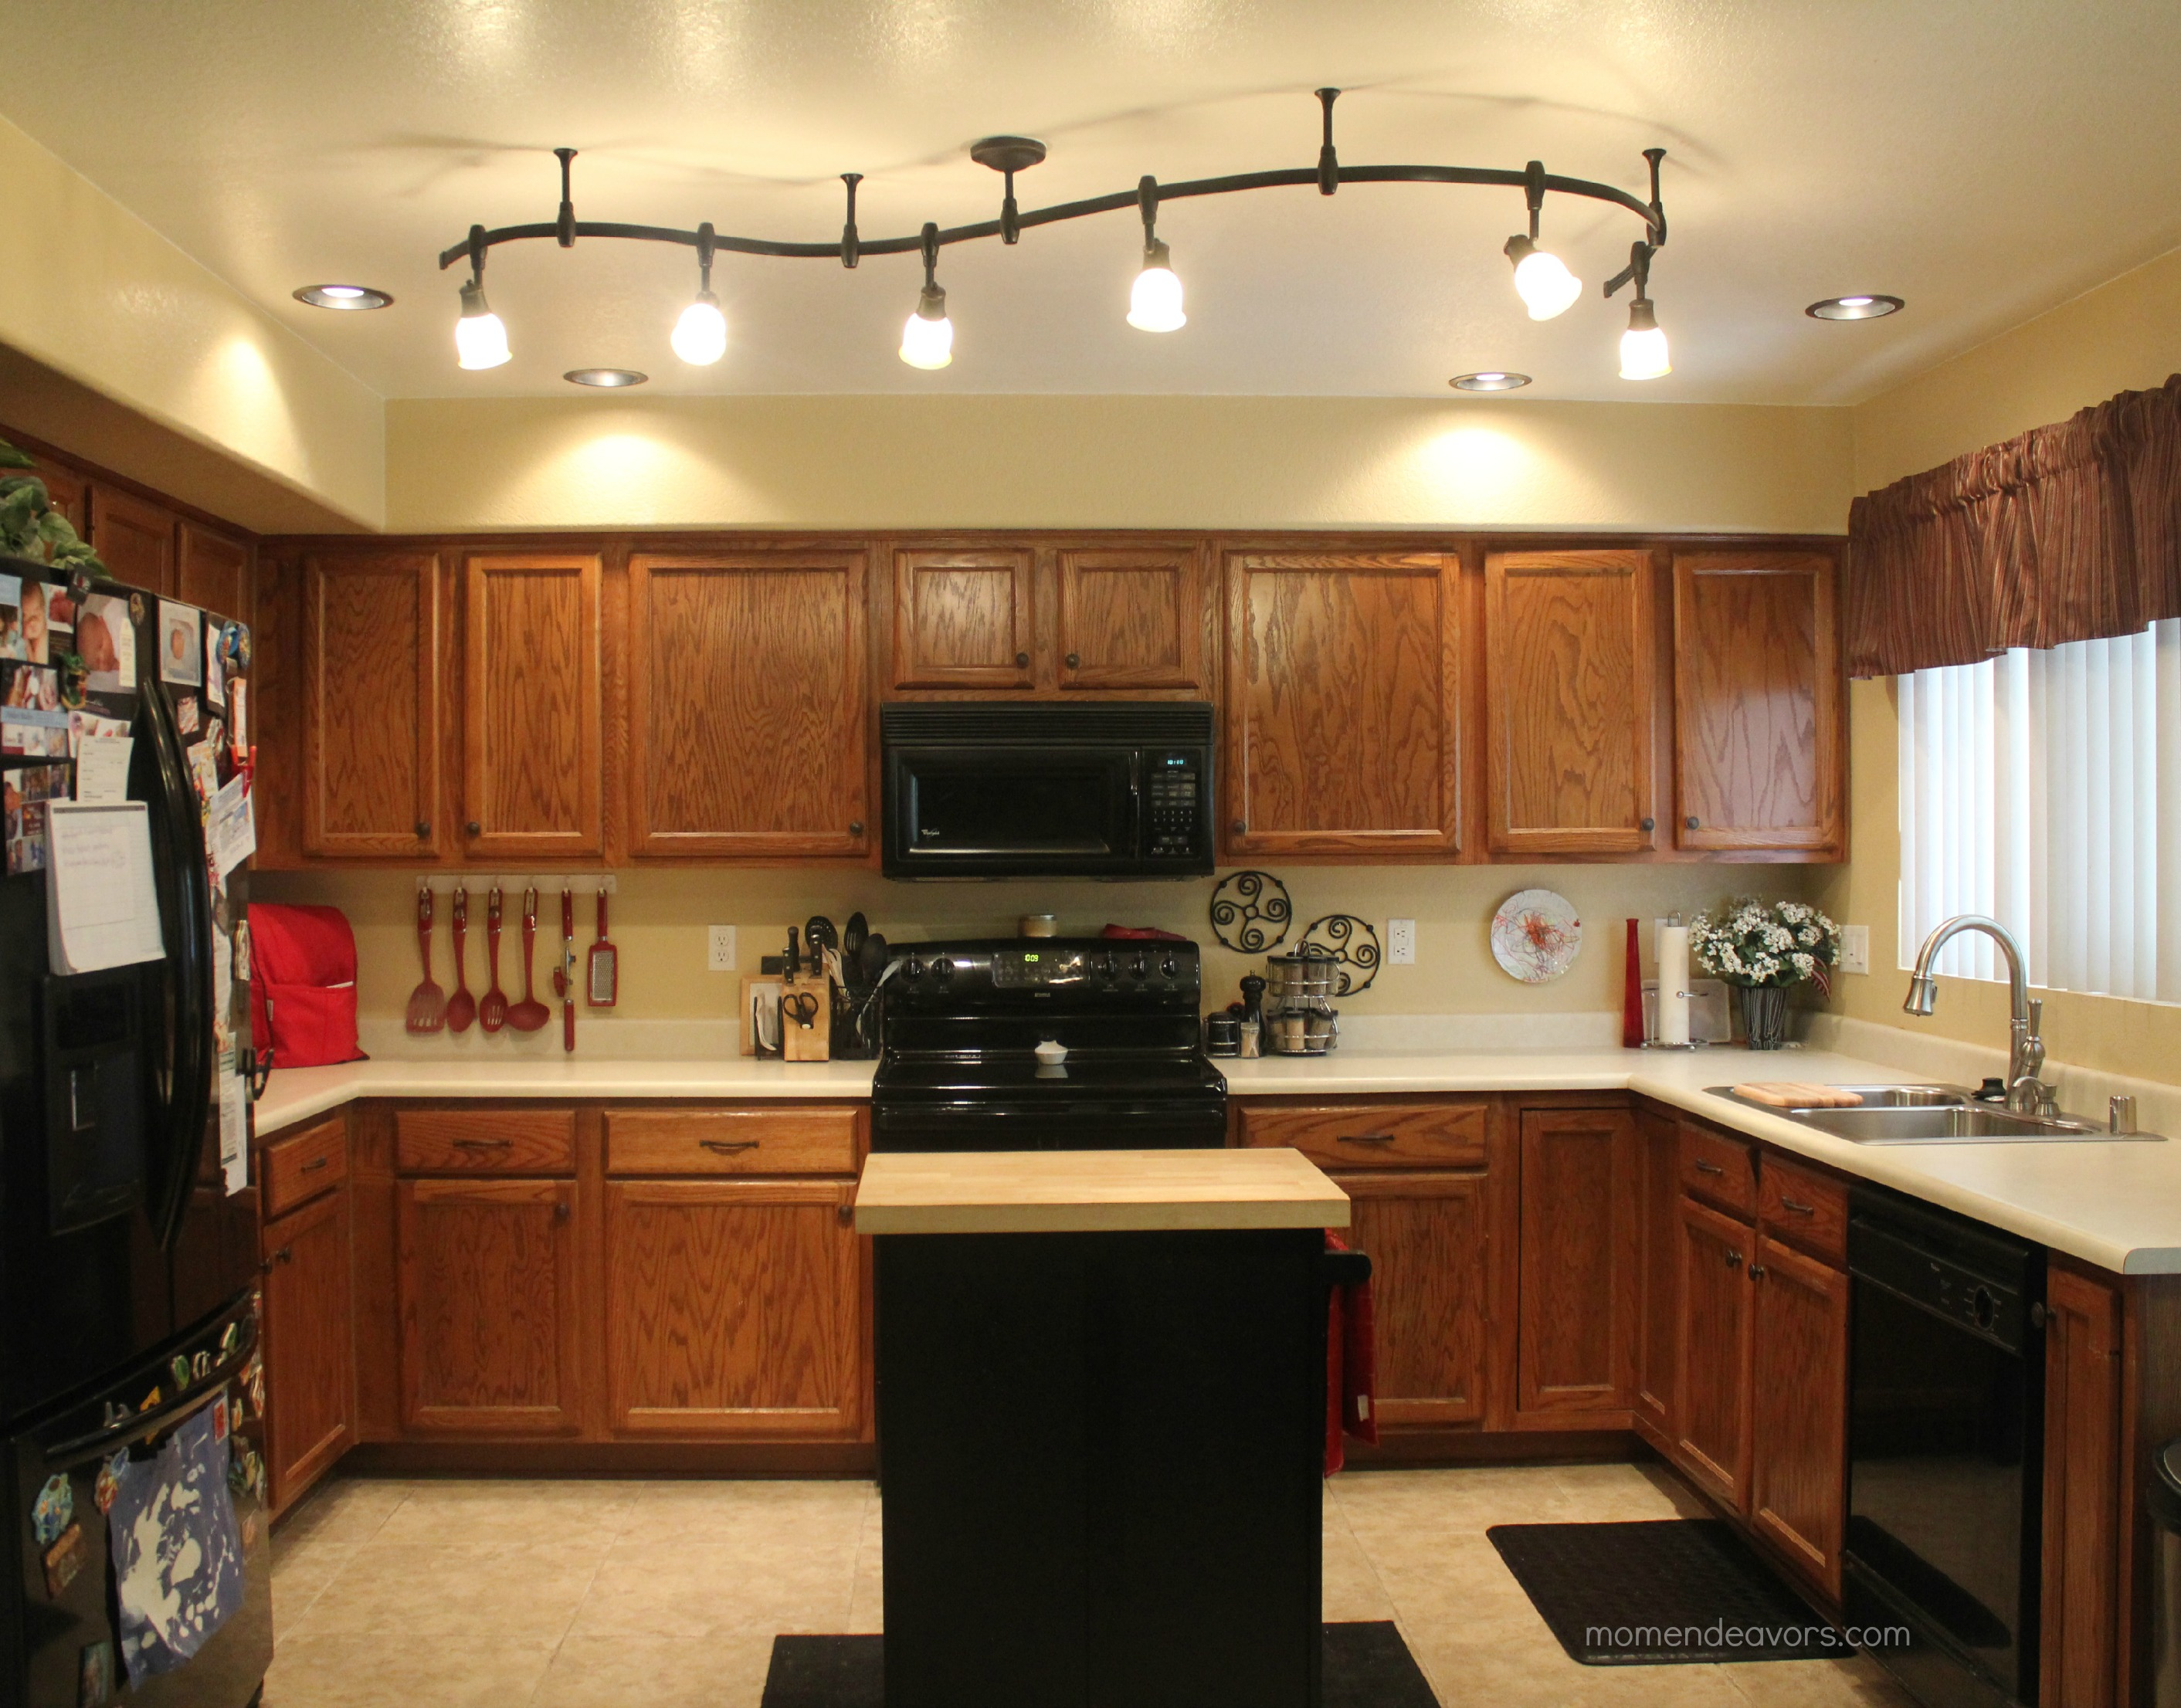 Mini Kitchen Remodel – New lighting makes a WORLD of difference!